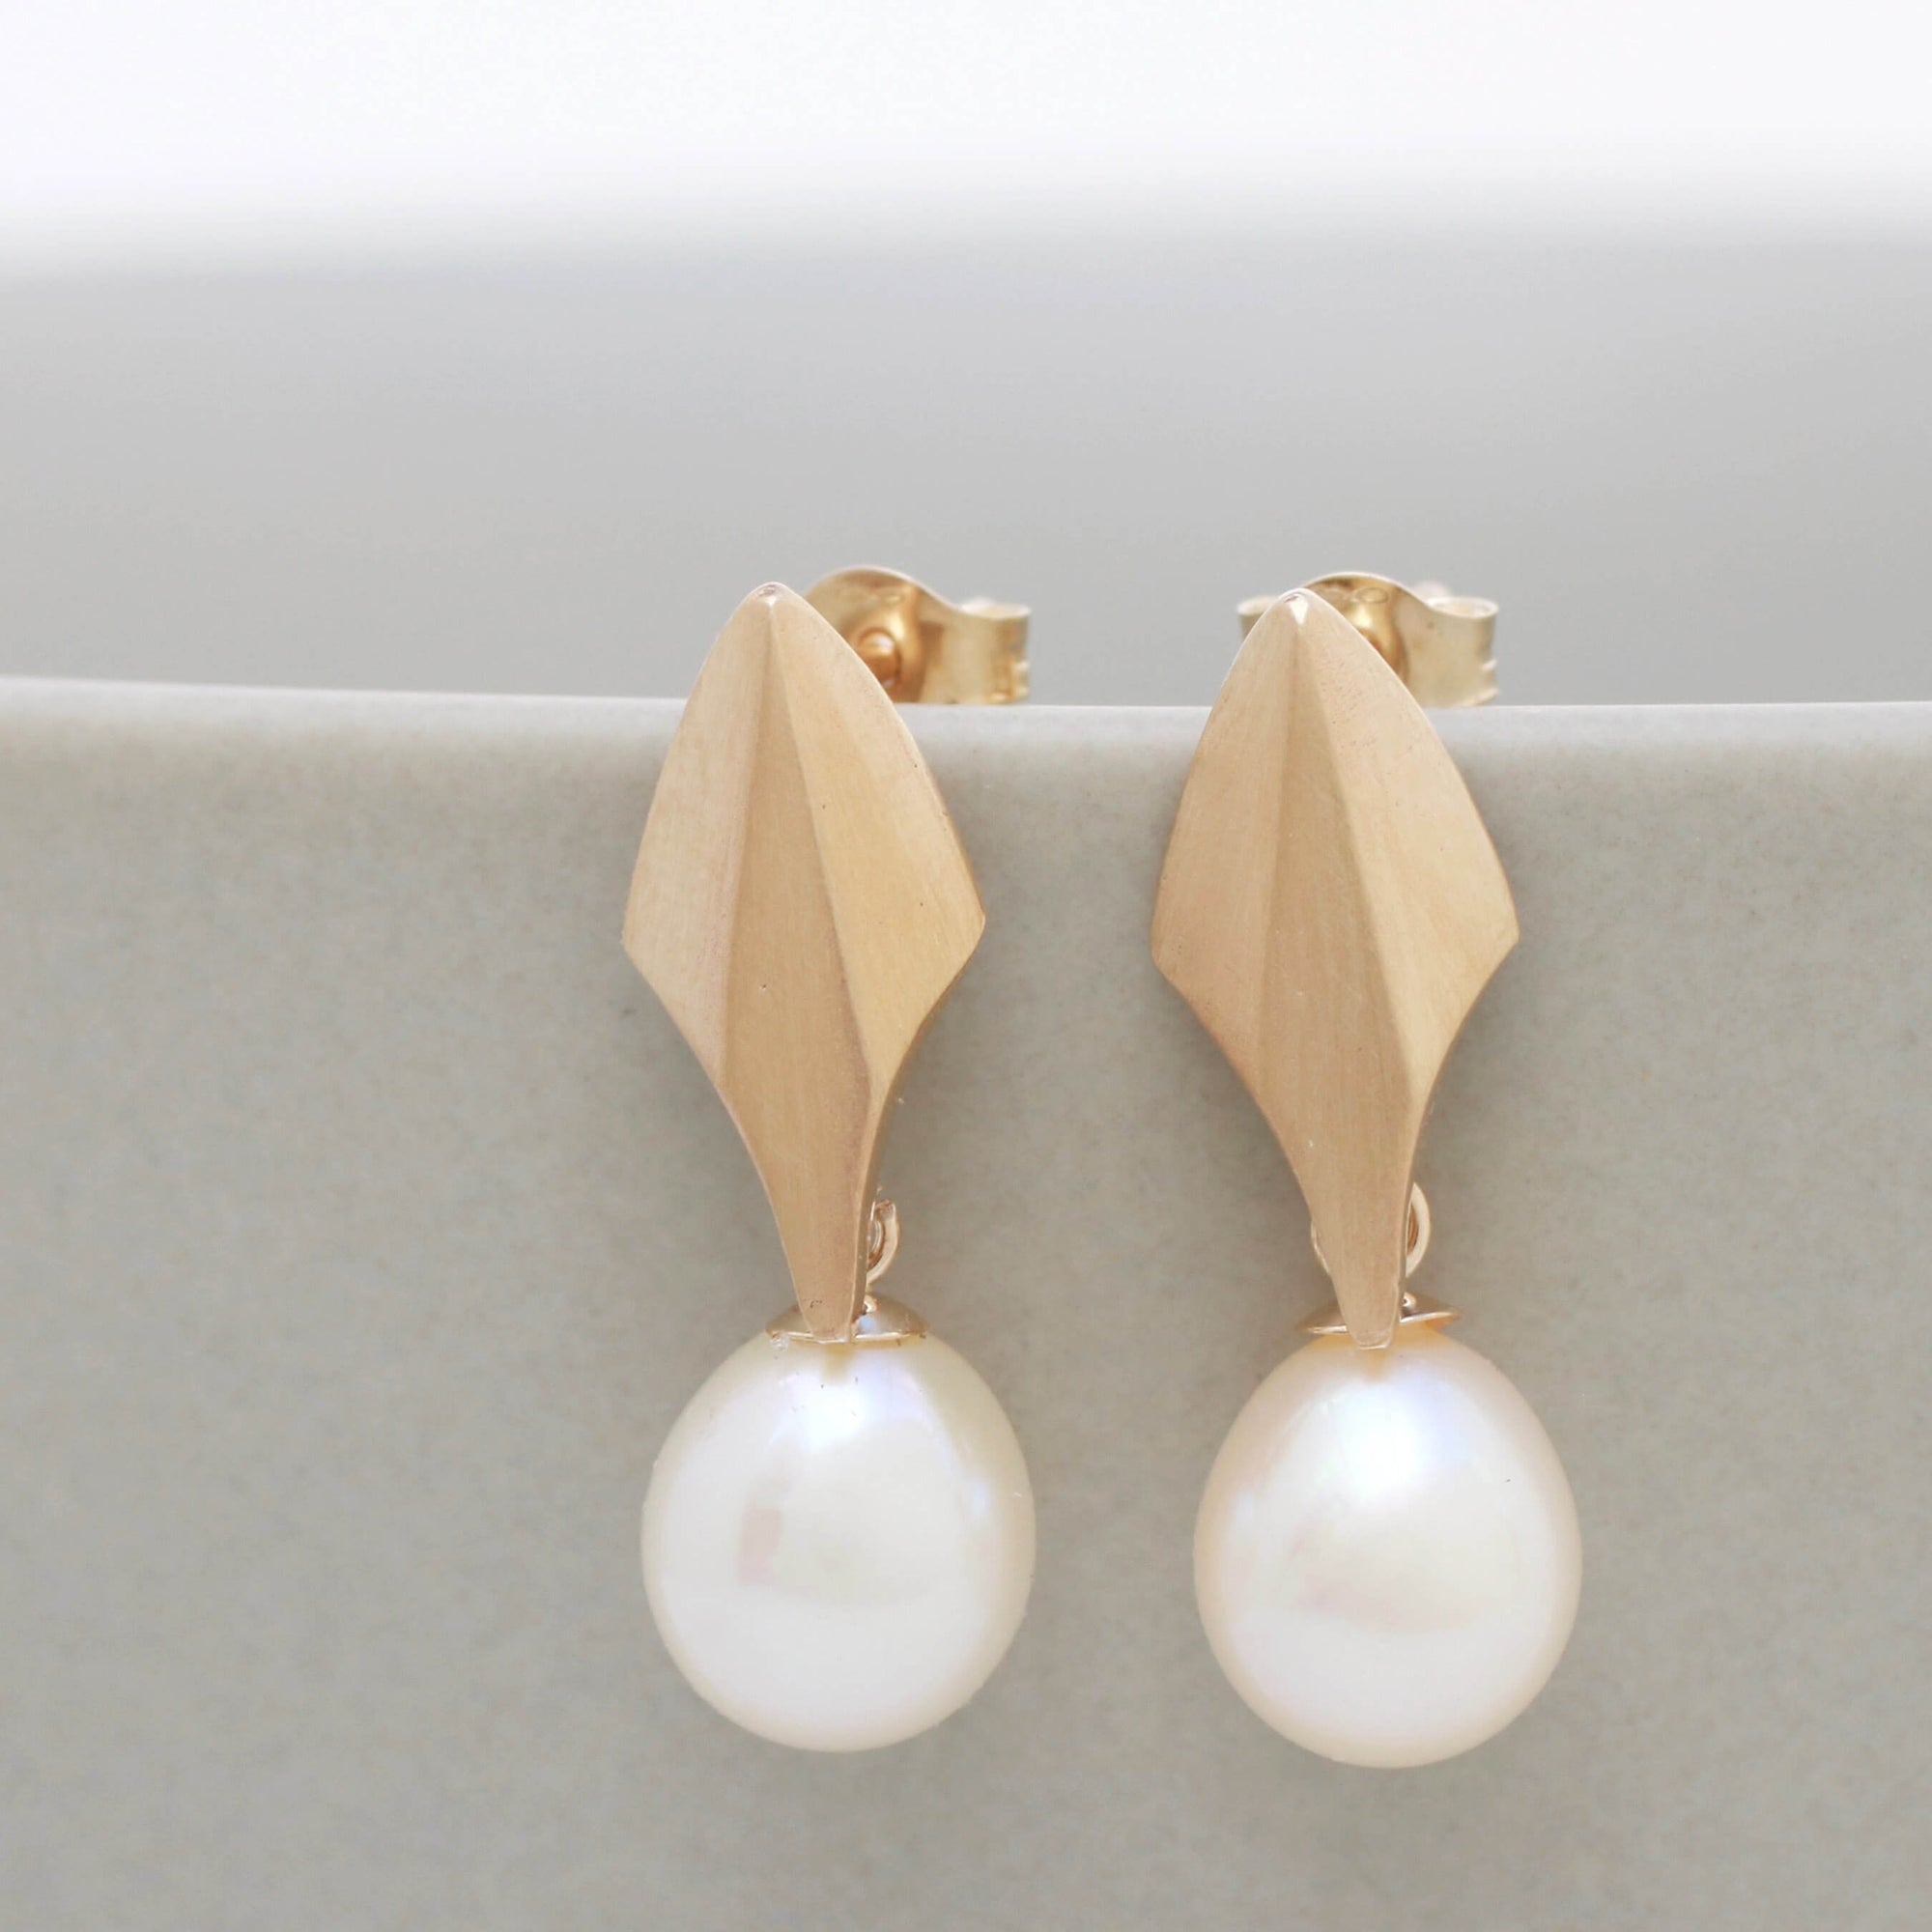 9ct Gold Deco Dropper Earrings With Pearls